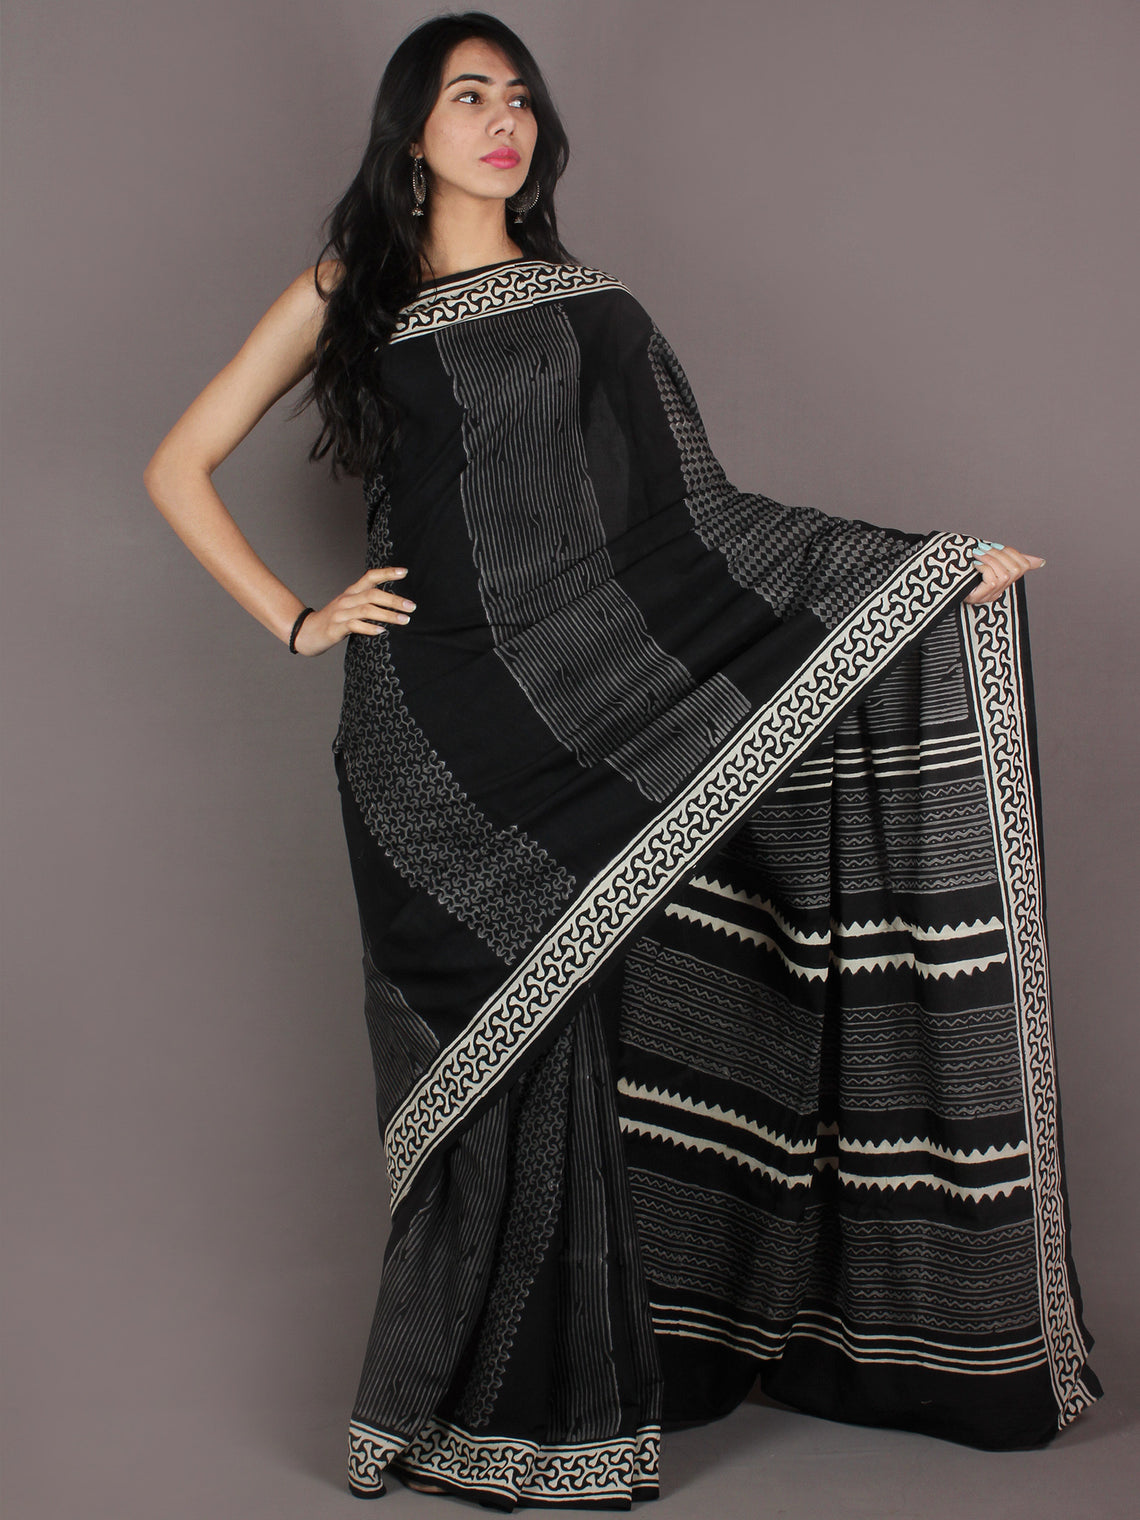 Black White Grey Hand Block Printed in Natural Colors Cotton Mul Saree - S03170924